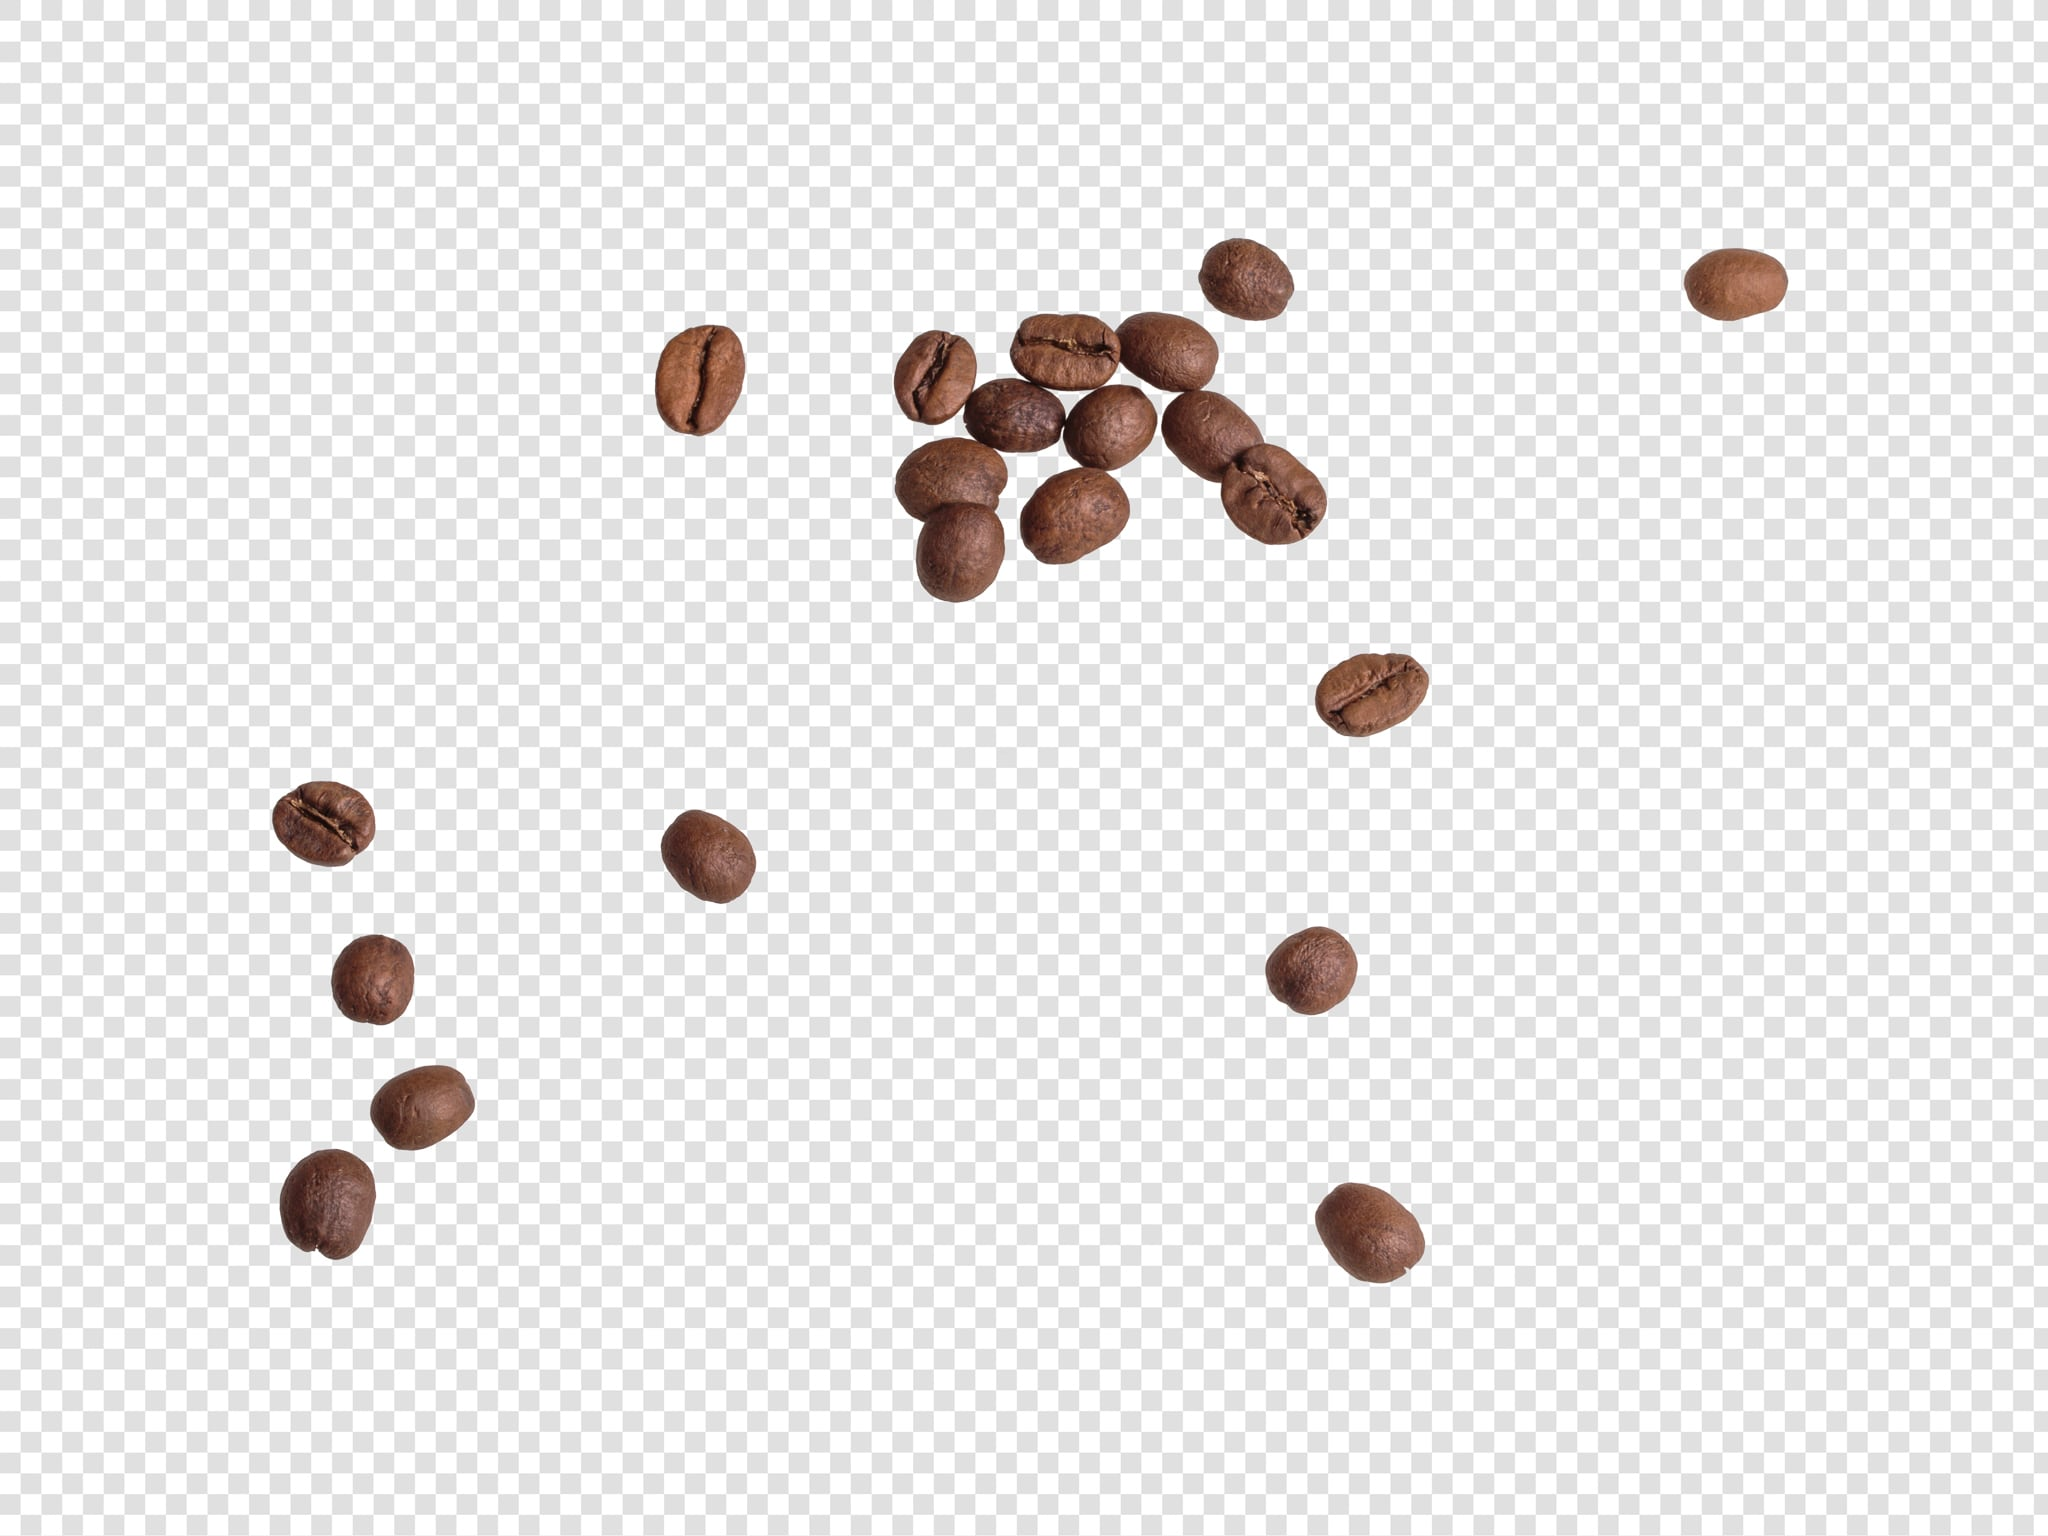 Coffee PSD layered image